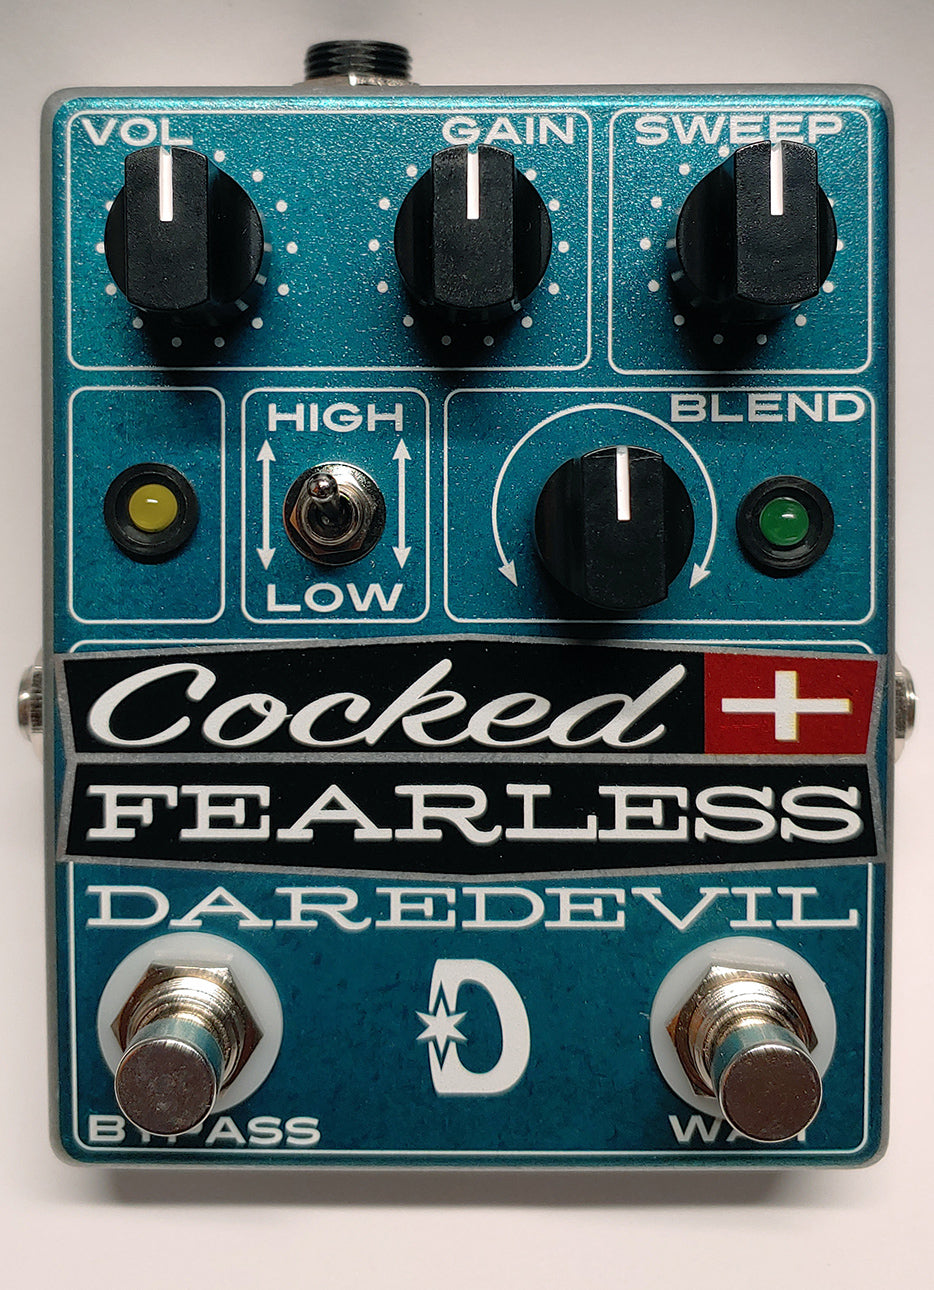 Daredevil Cocked and Fearless Distortion